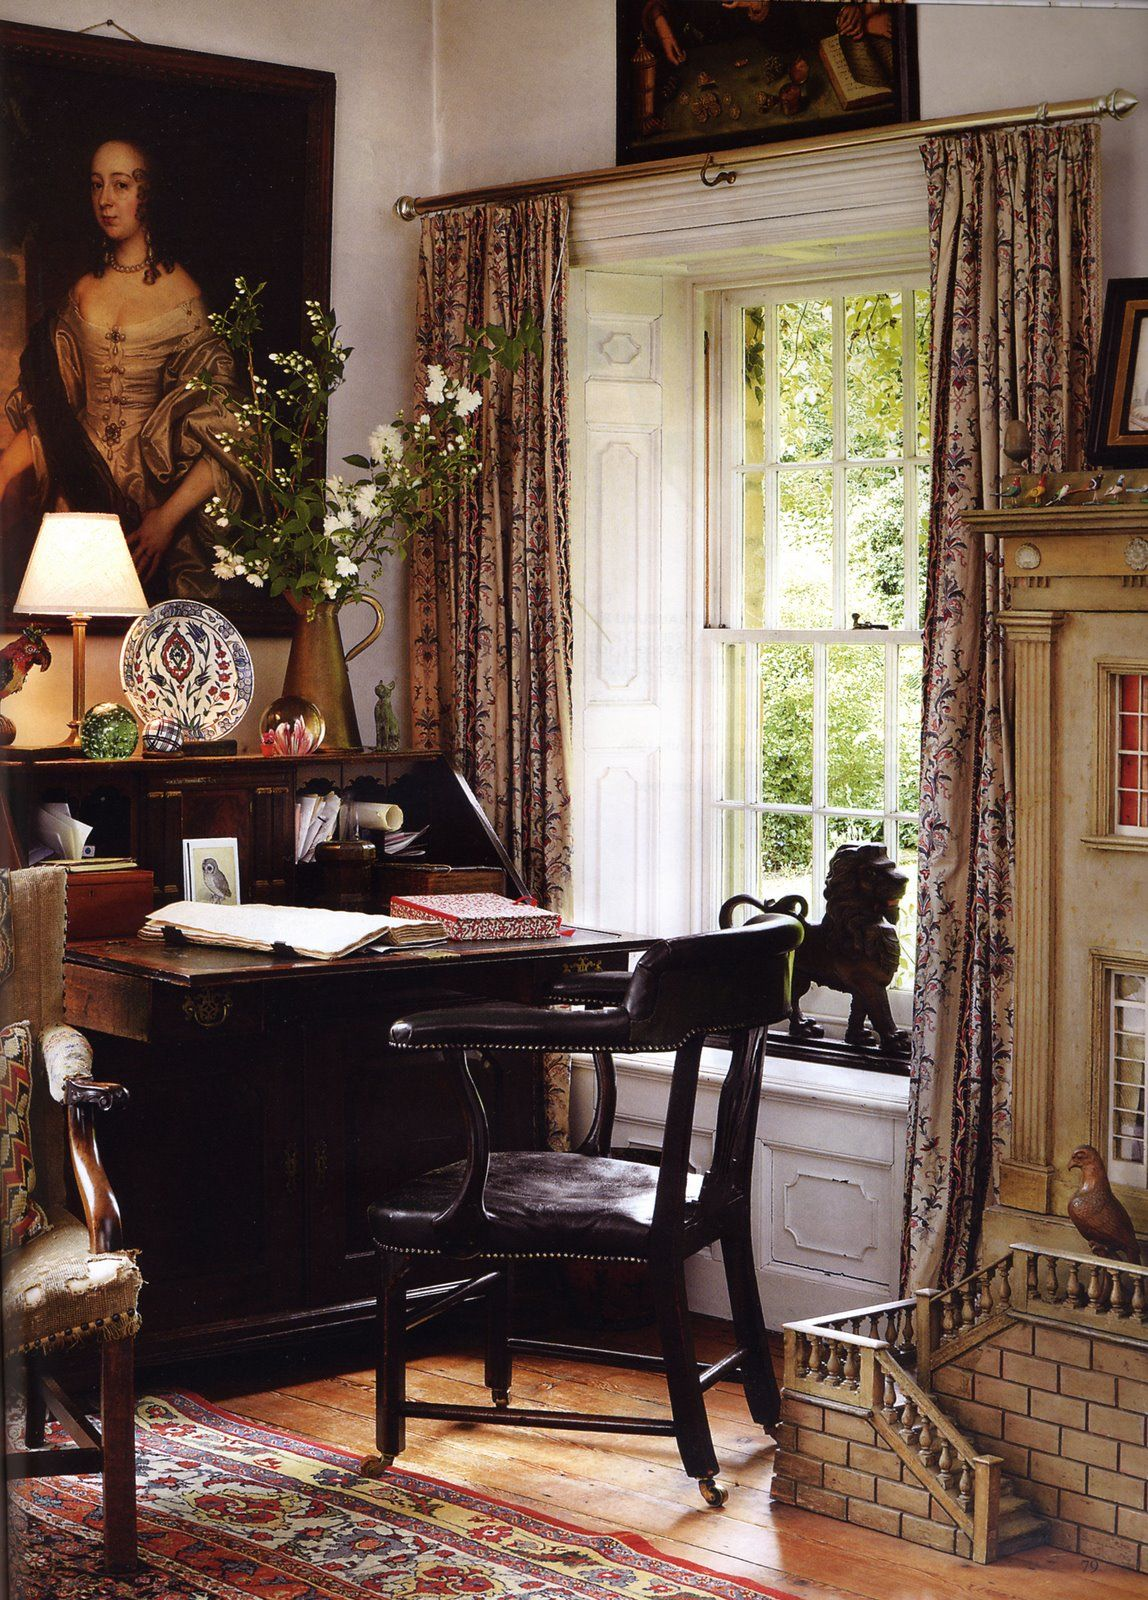 Engels Interieur Pin By Suzette Dam On Dordogne Pinterest Engels Interieur